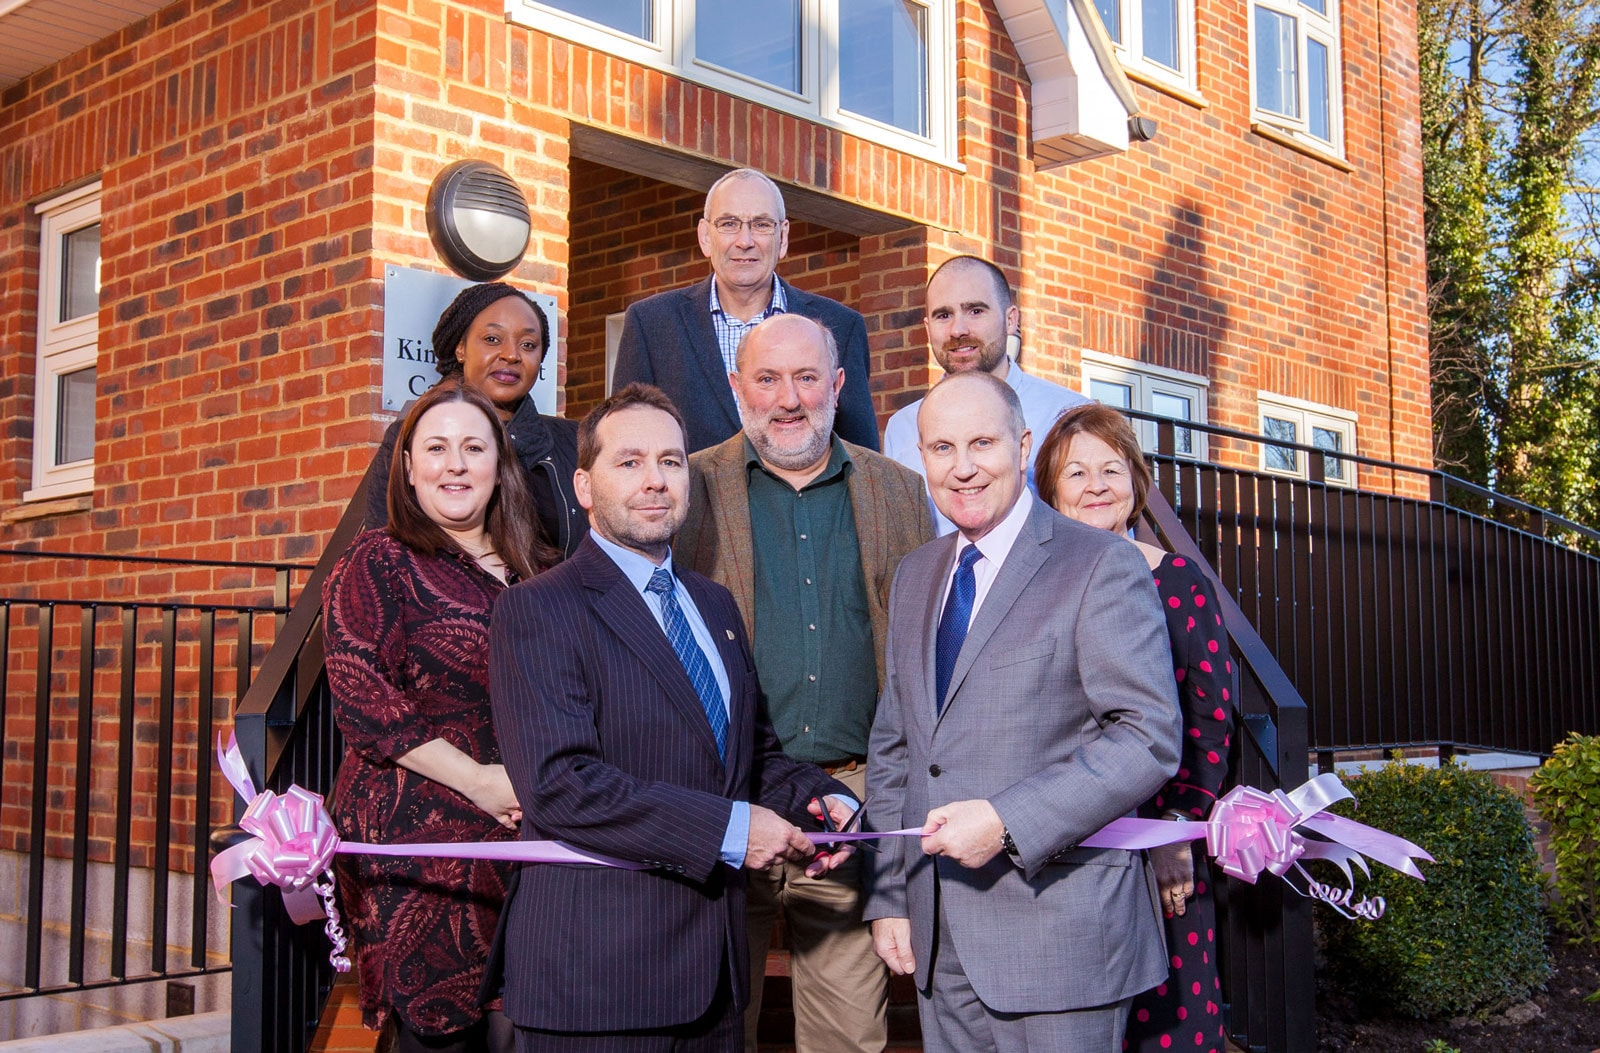 Opening of new Kimberly East care home in Salisbury